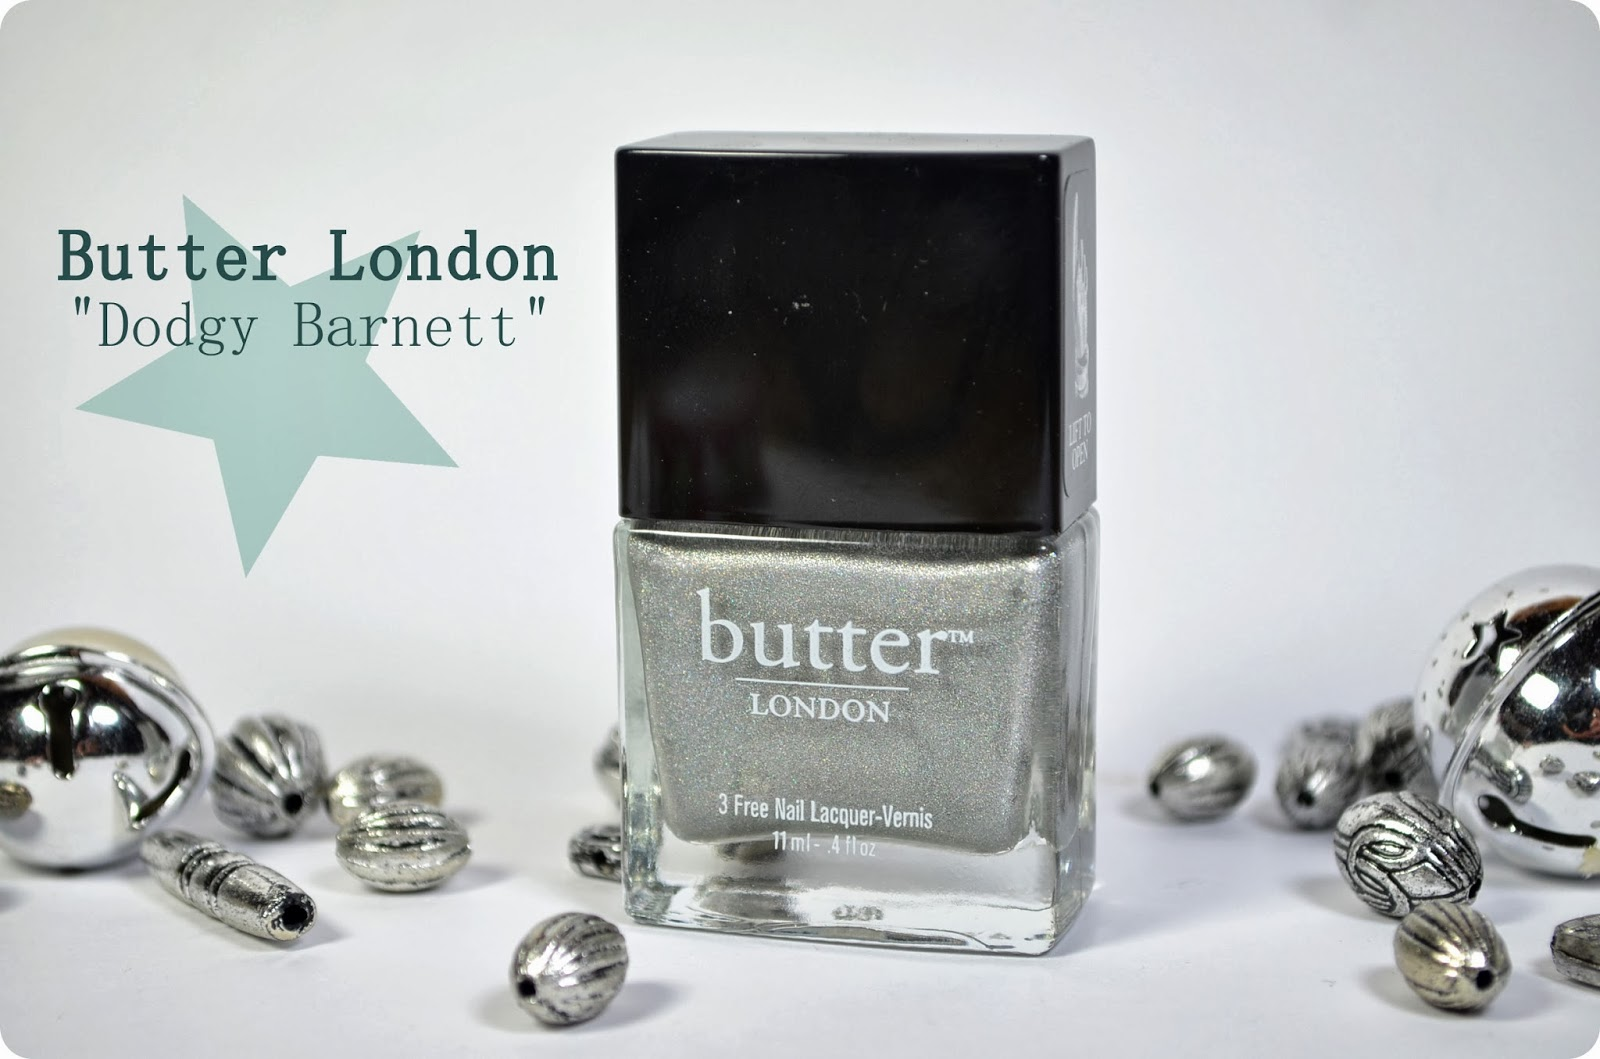 Glossybox Golden Box 2013 Butter London DODGY BARNETT